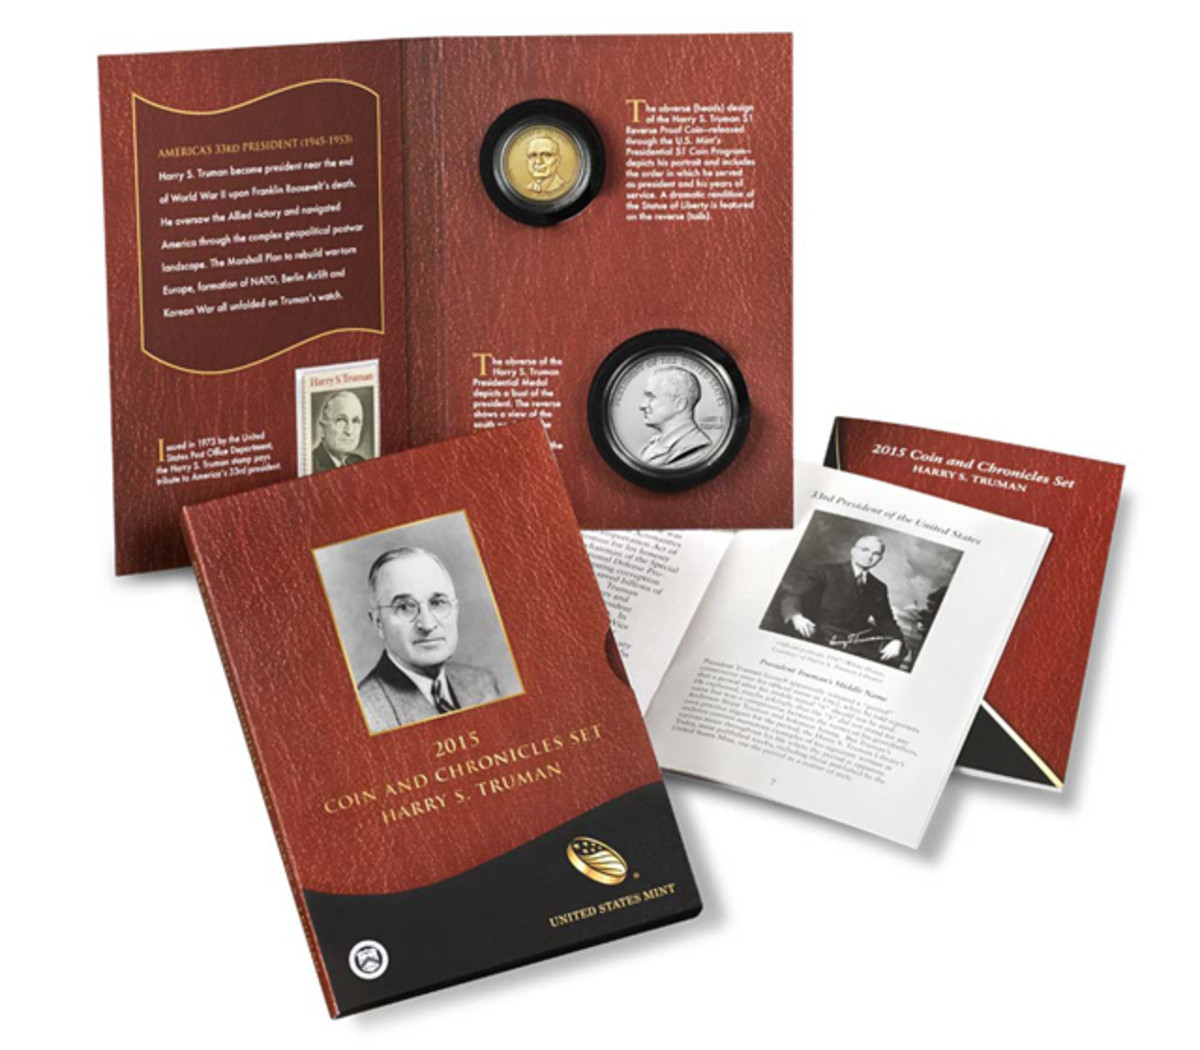 The Truman Coin & Chronicles set maintains an above $200 retail price on eBay.